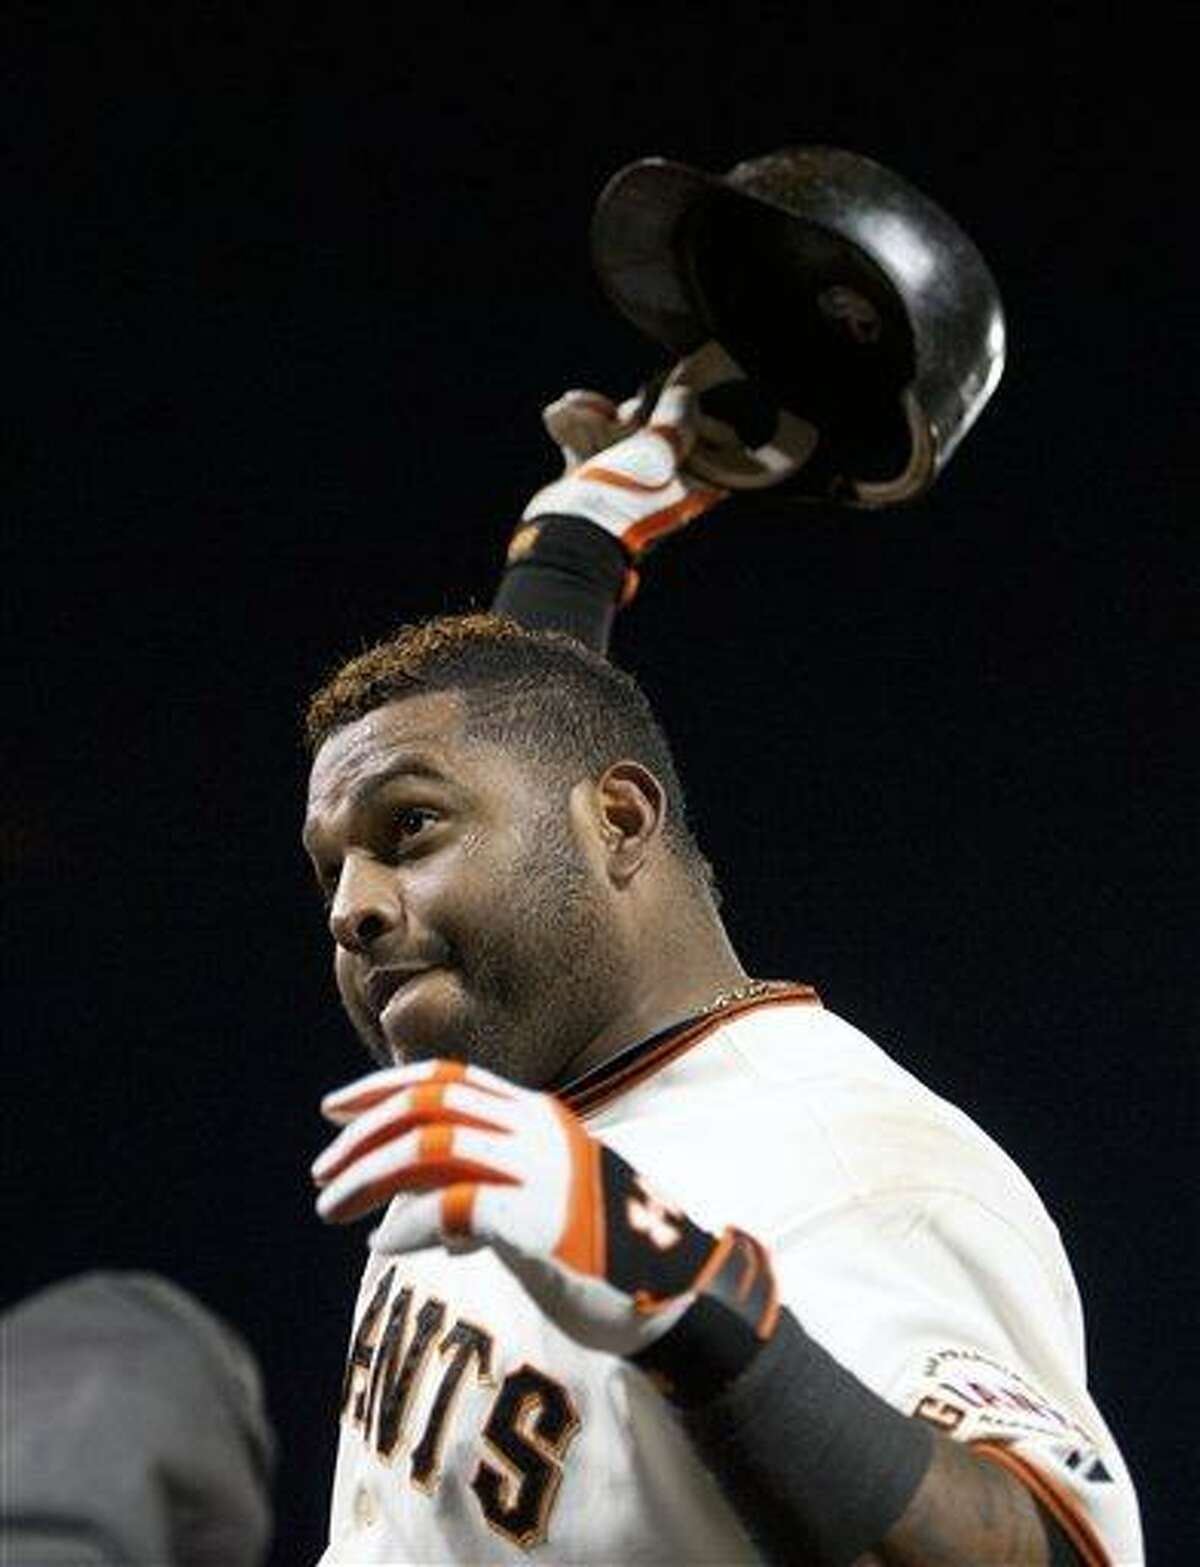 San Francisco Giants' Pablo Sandoval tips his helmet to the crowd after hitting his third home run against the Detroit Tigers during Game 1 of baseball's World Series, Wednesday, Oct. 24, 2012, in San Francisco. (AP Photo/The Sacramento Bee, Paul Kitagaki Jr.) MAGS OUT; TV OUT (KCRA3, KXTV10, KOVR13, KUVS19, KMAZ31, KTXL40) MANDATORY CREDIT